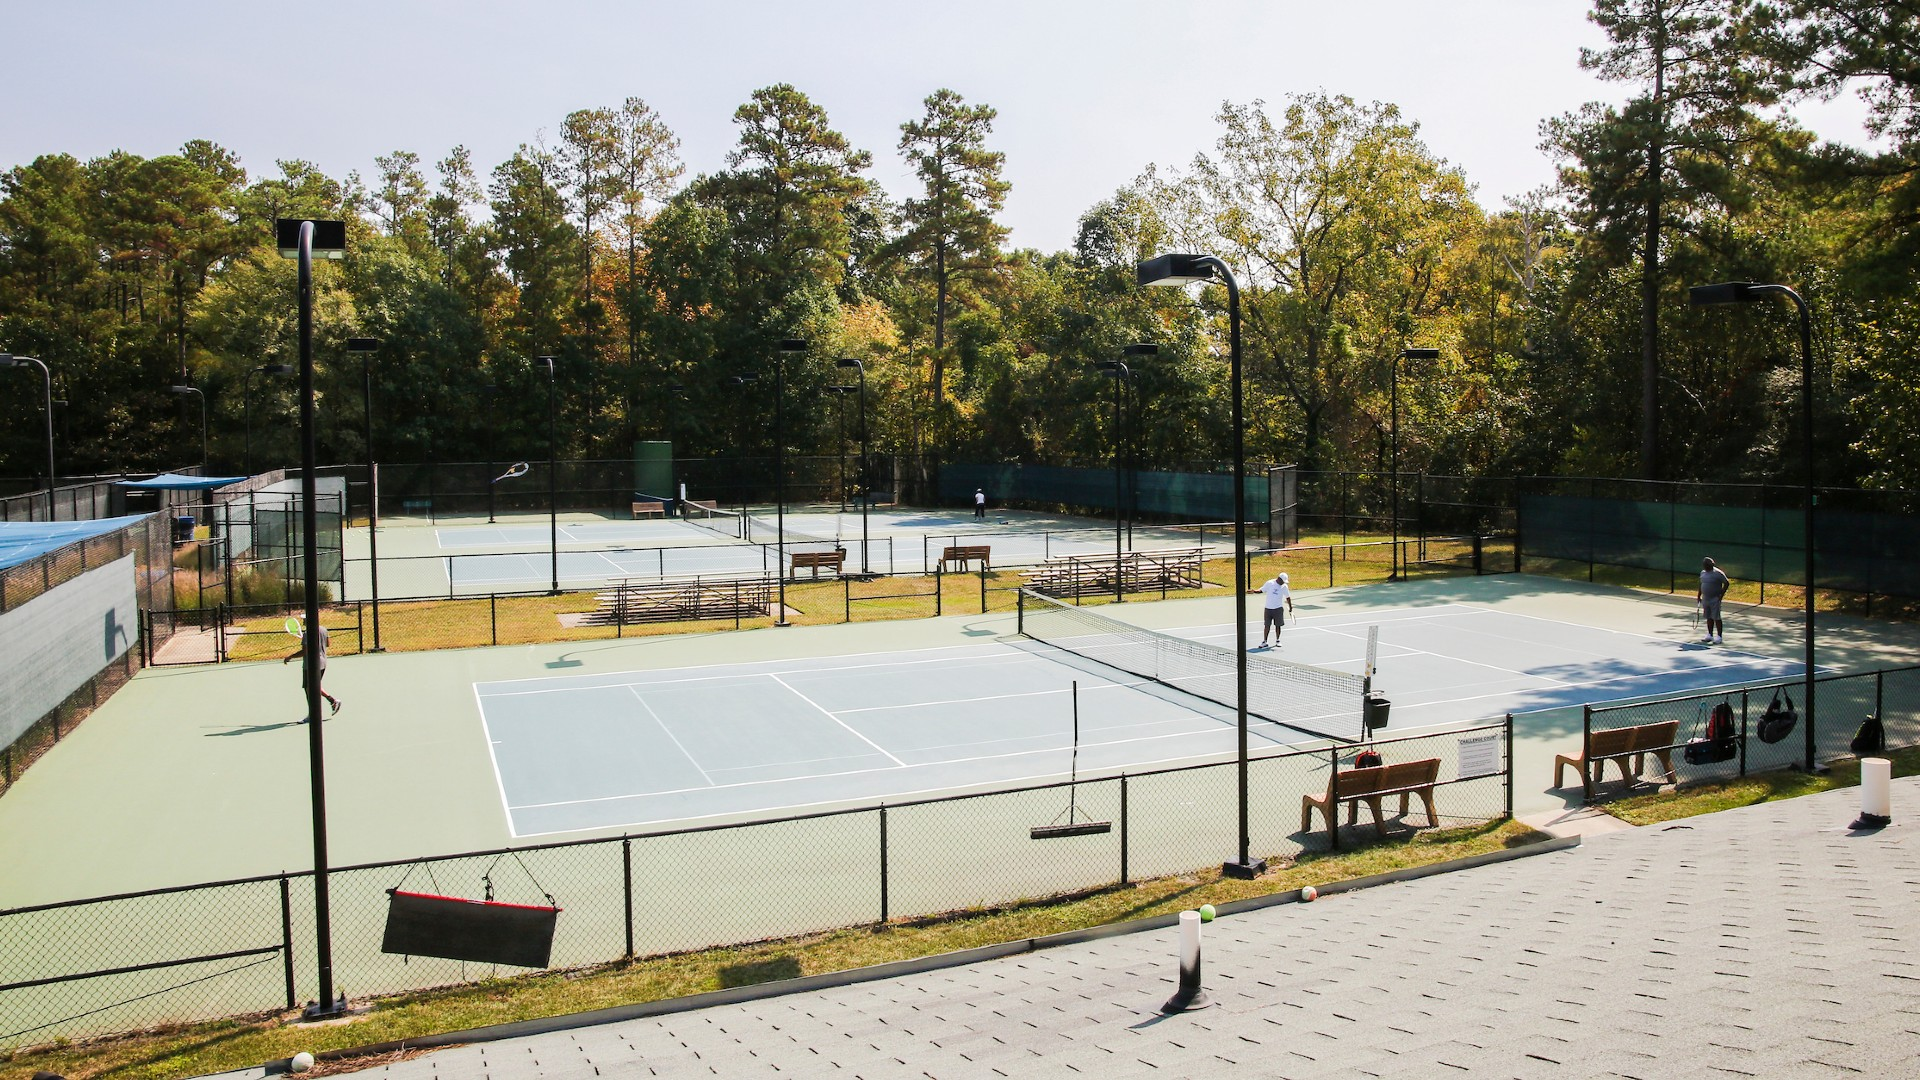 View of four tennis courts at once Millbrook Exchange Park